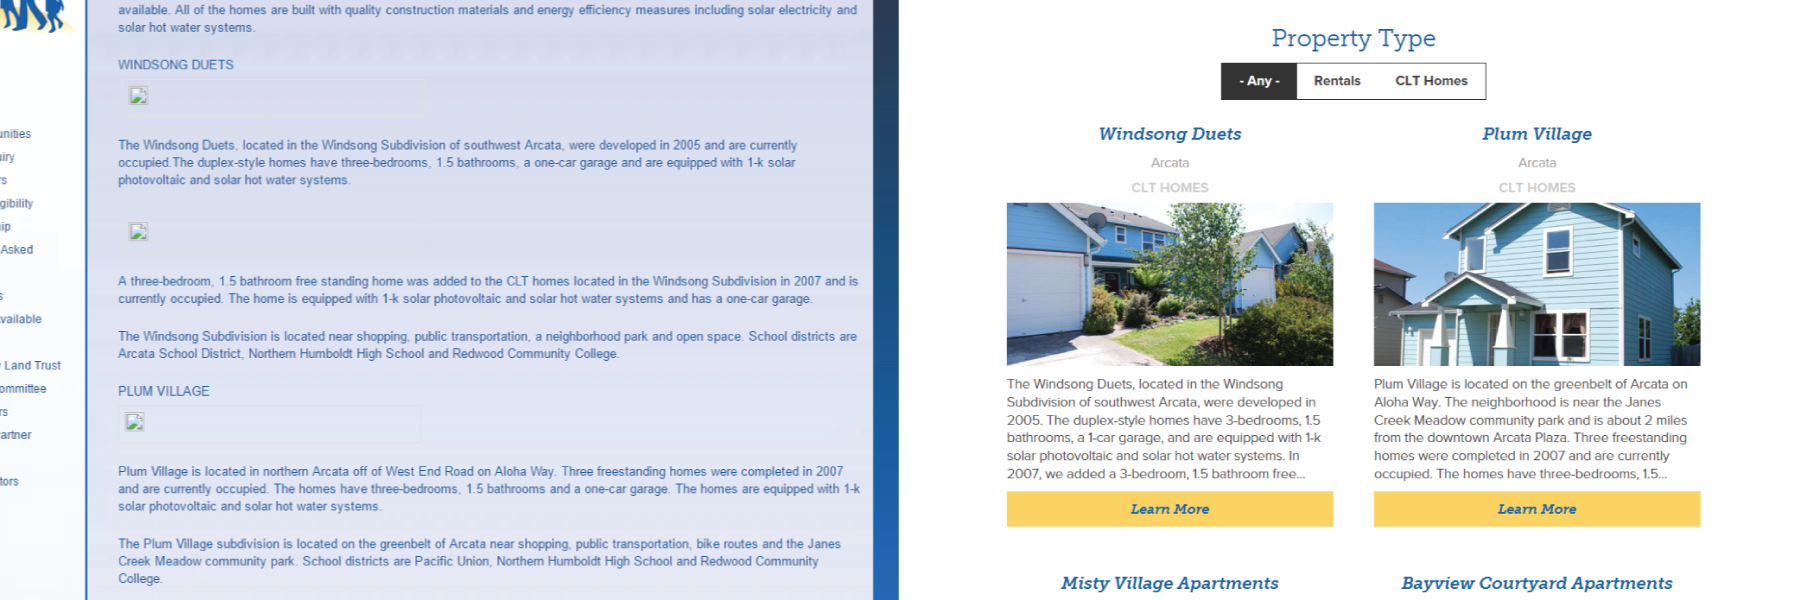 Picture demonstrating the difference between Housing Humboldt's old Property Profile Overview and their new one.